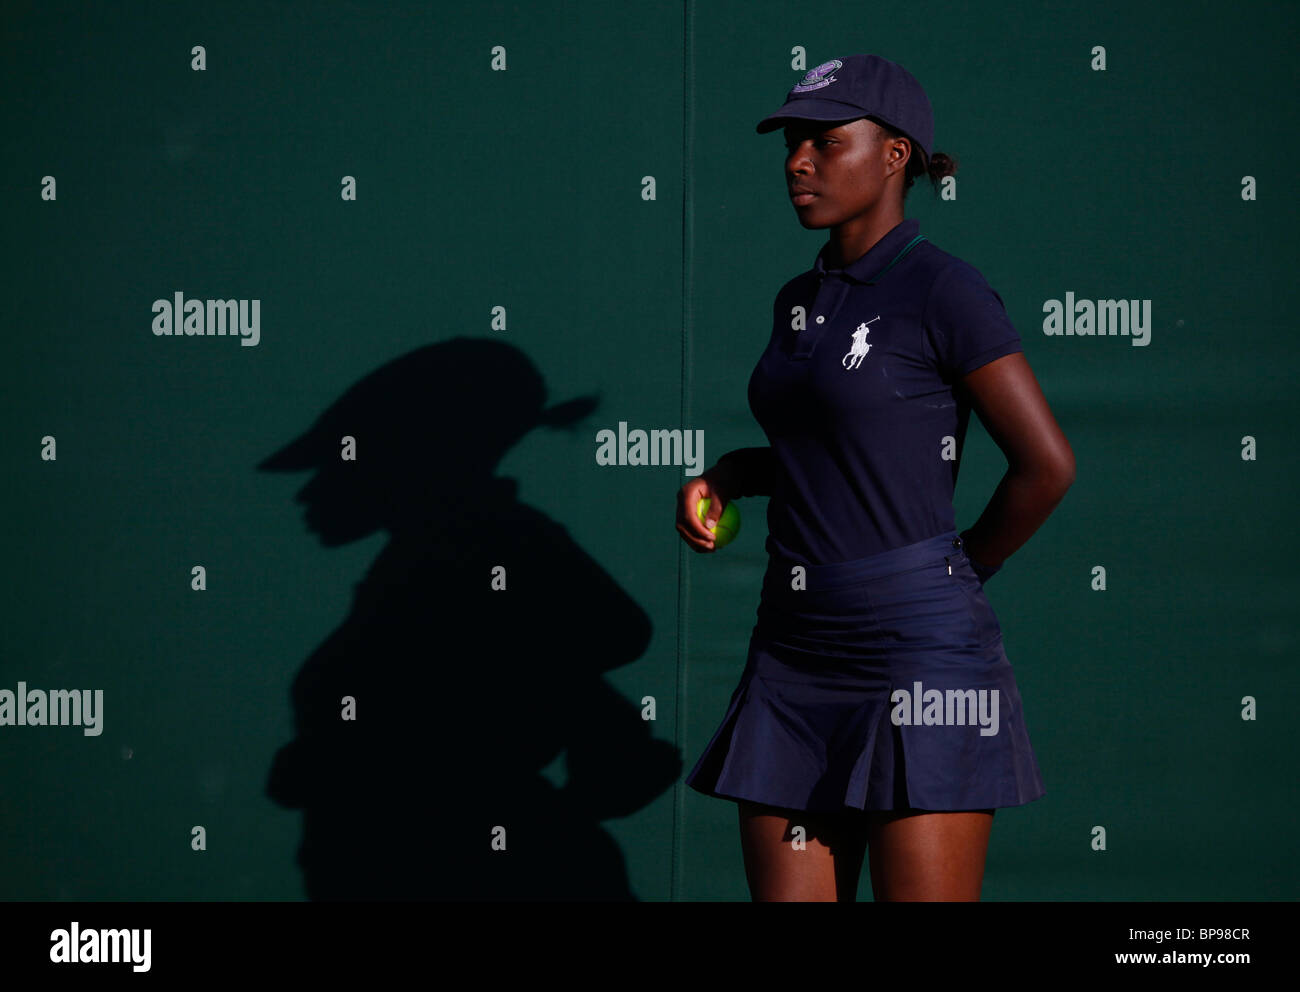 Ballgirl in the evening light of the 2010 Wimbledon Championships - Stock Image